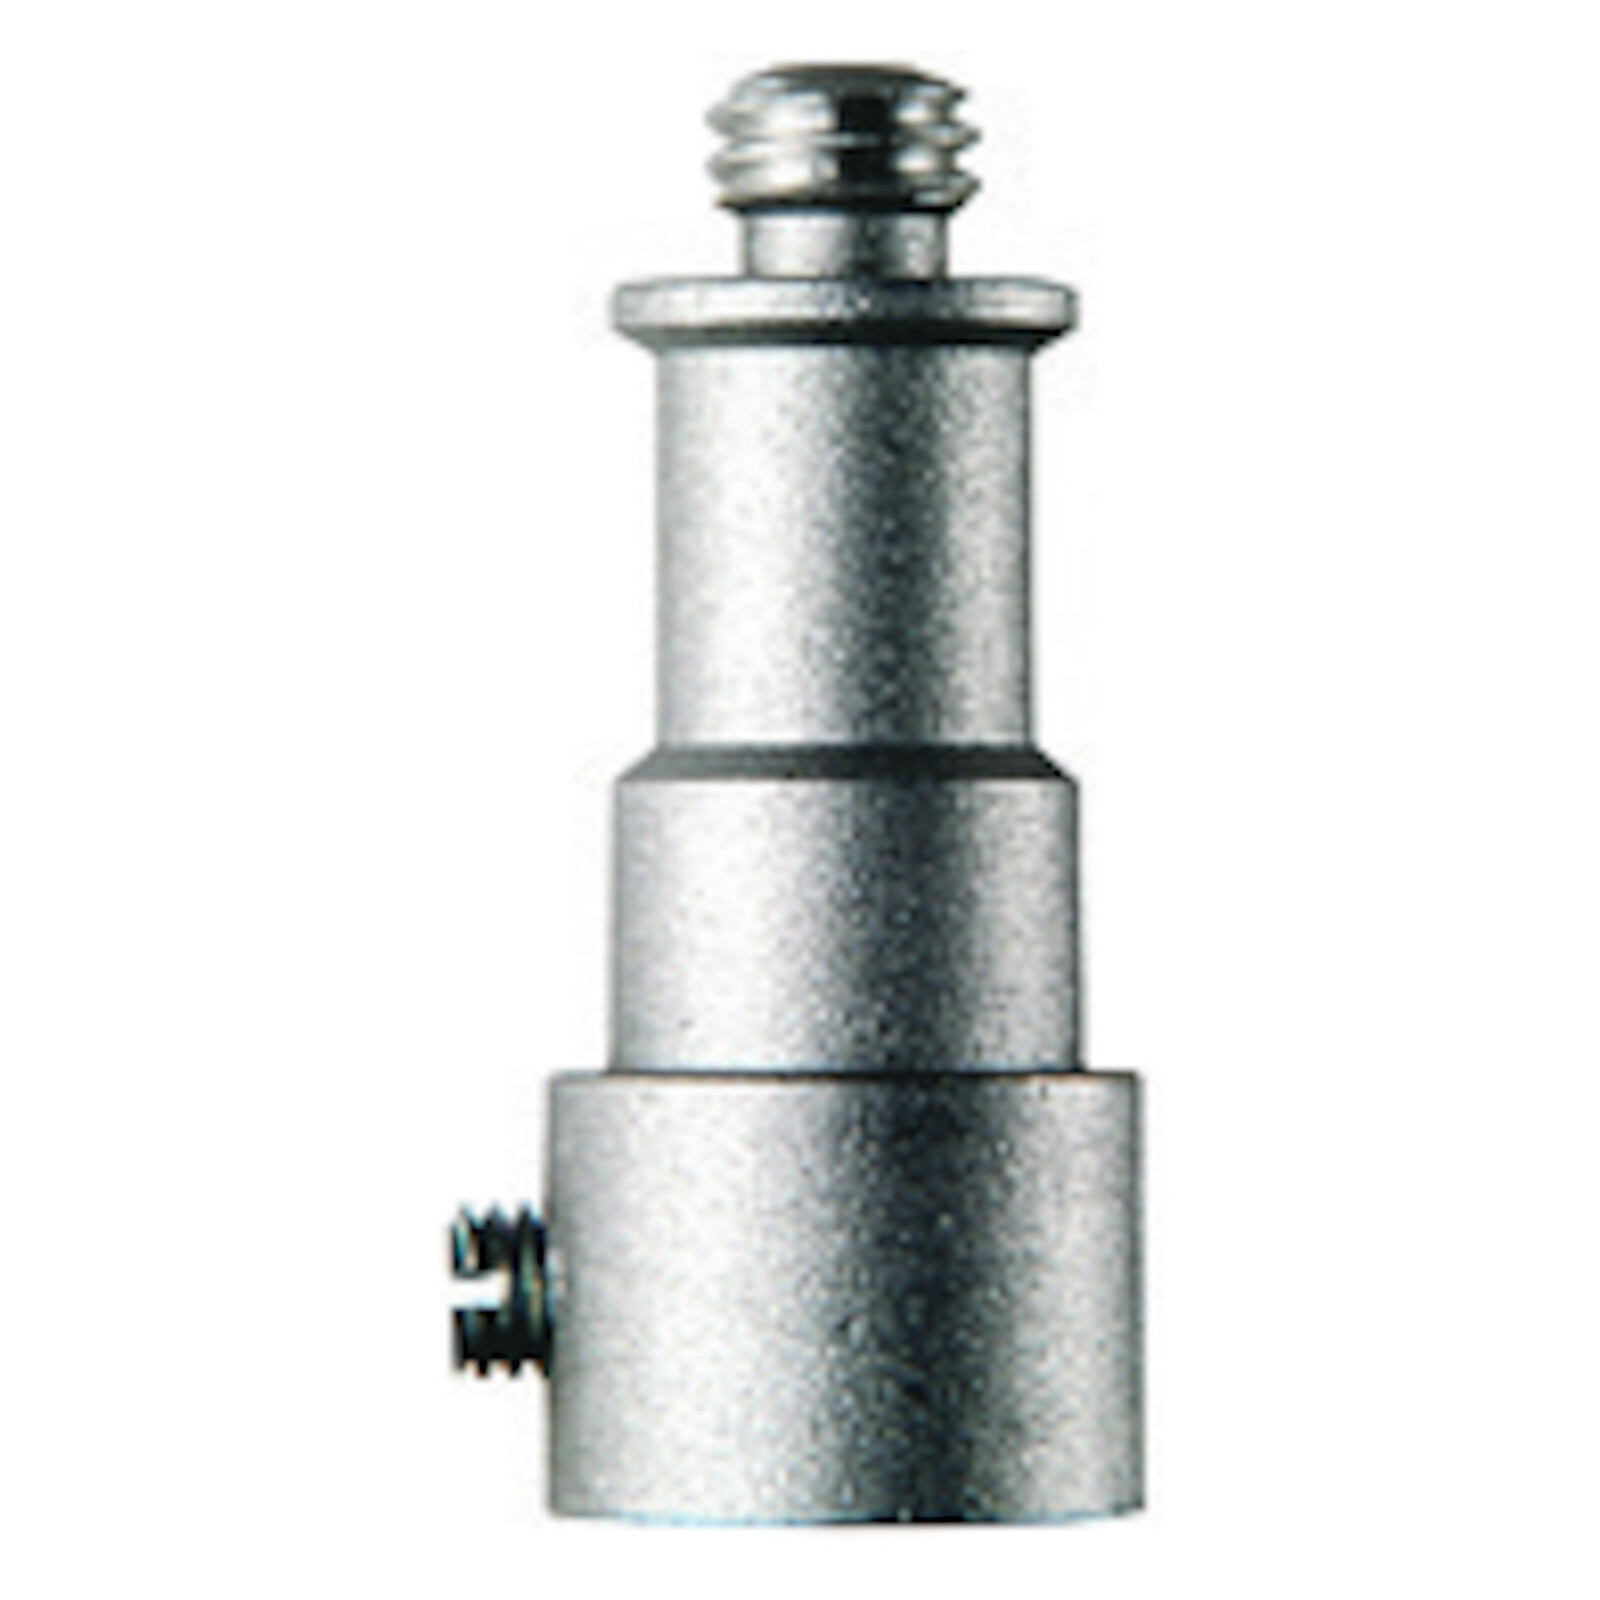 Manfrotto 182 Adapter 3/8 Stud To 5/8 Stud 3/8